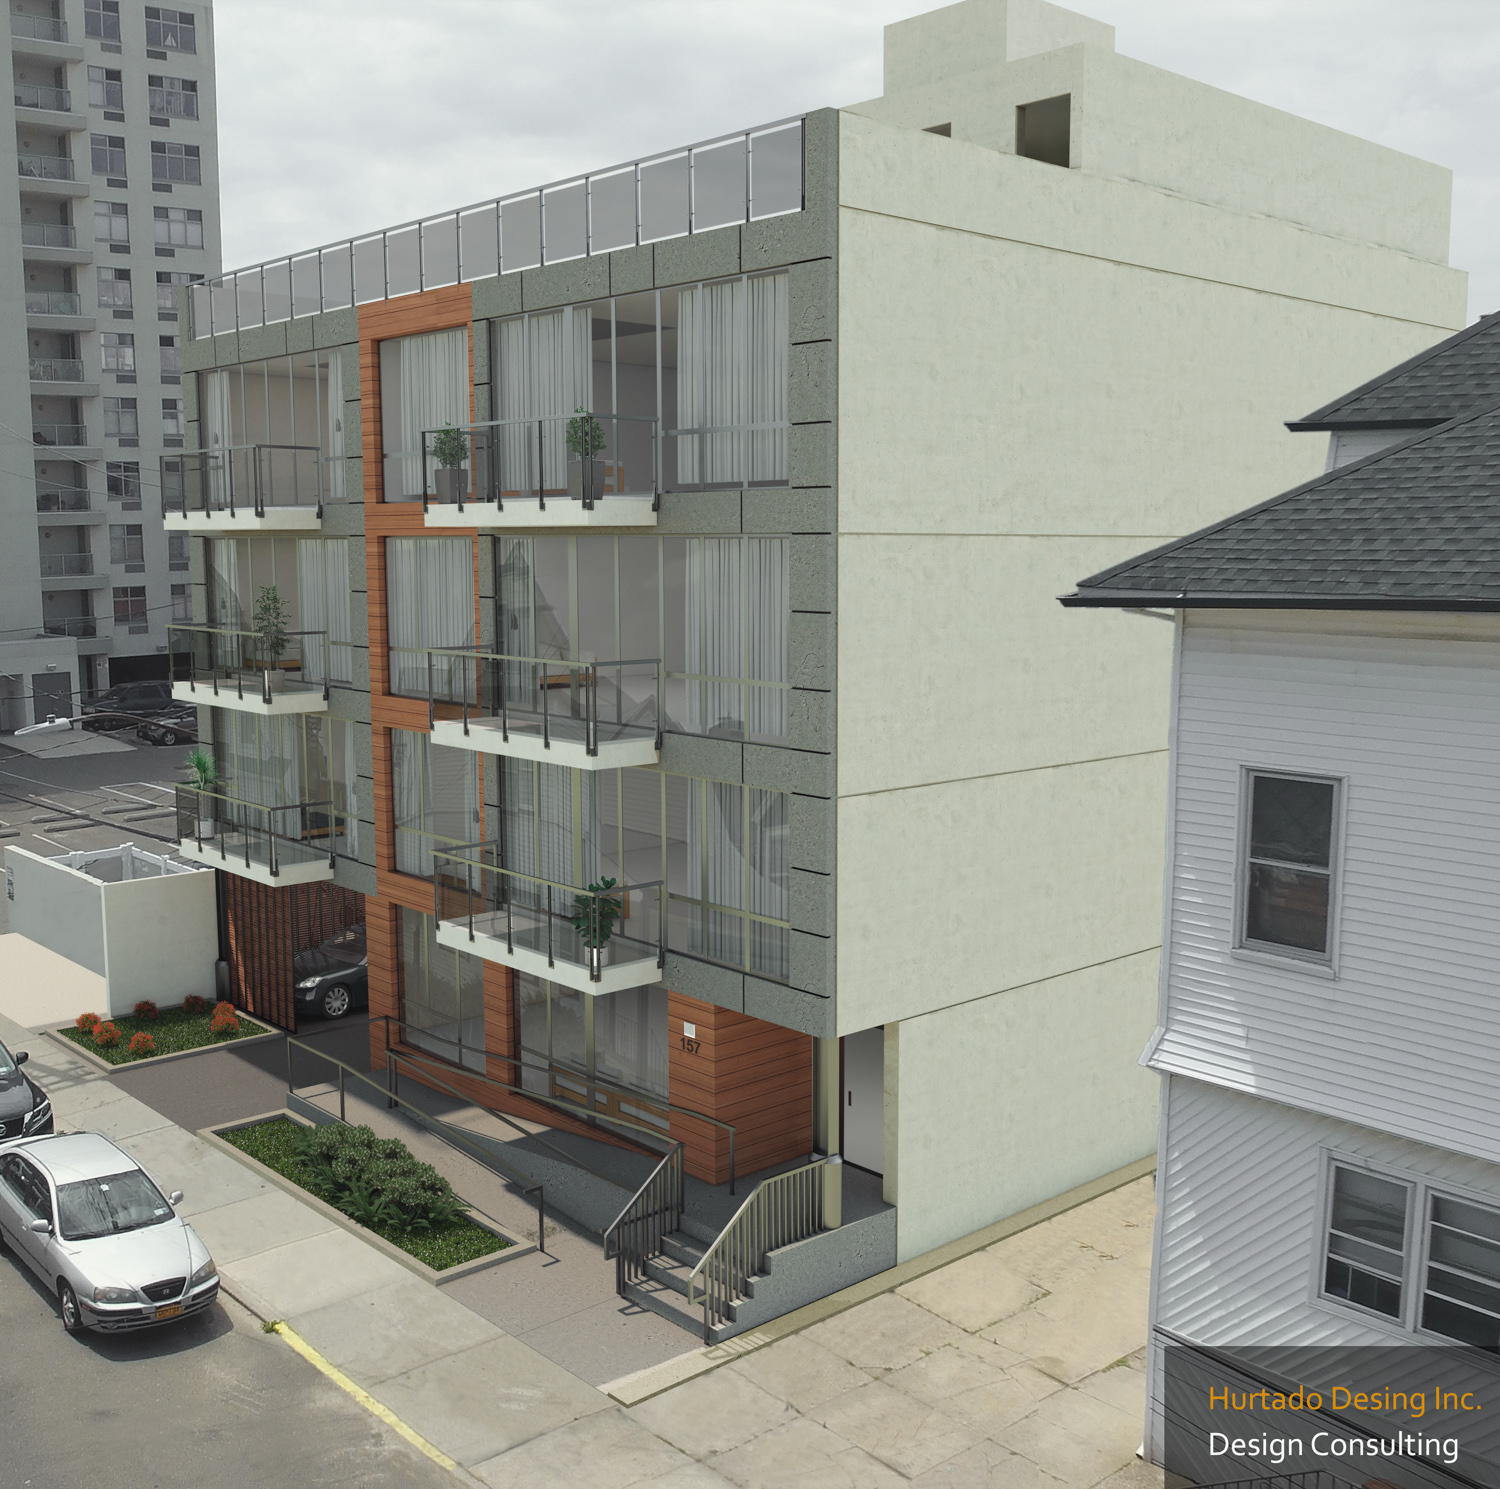 157 Beach 96th Street, rendering by Monica Hurtado Assoc AIA